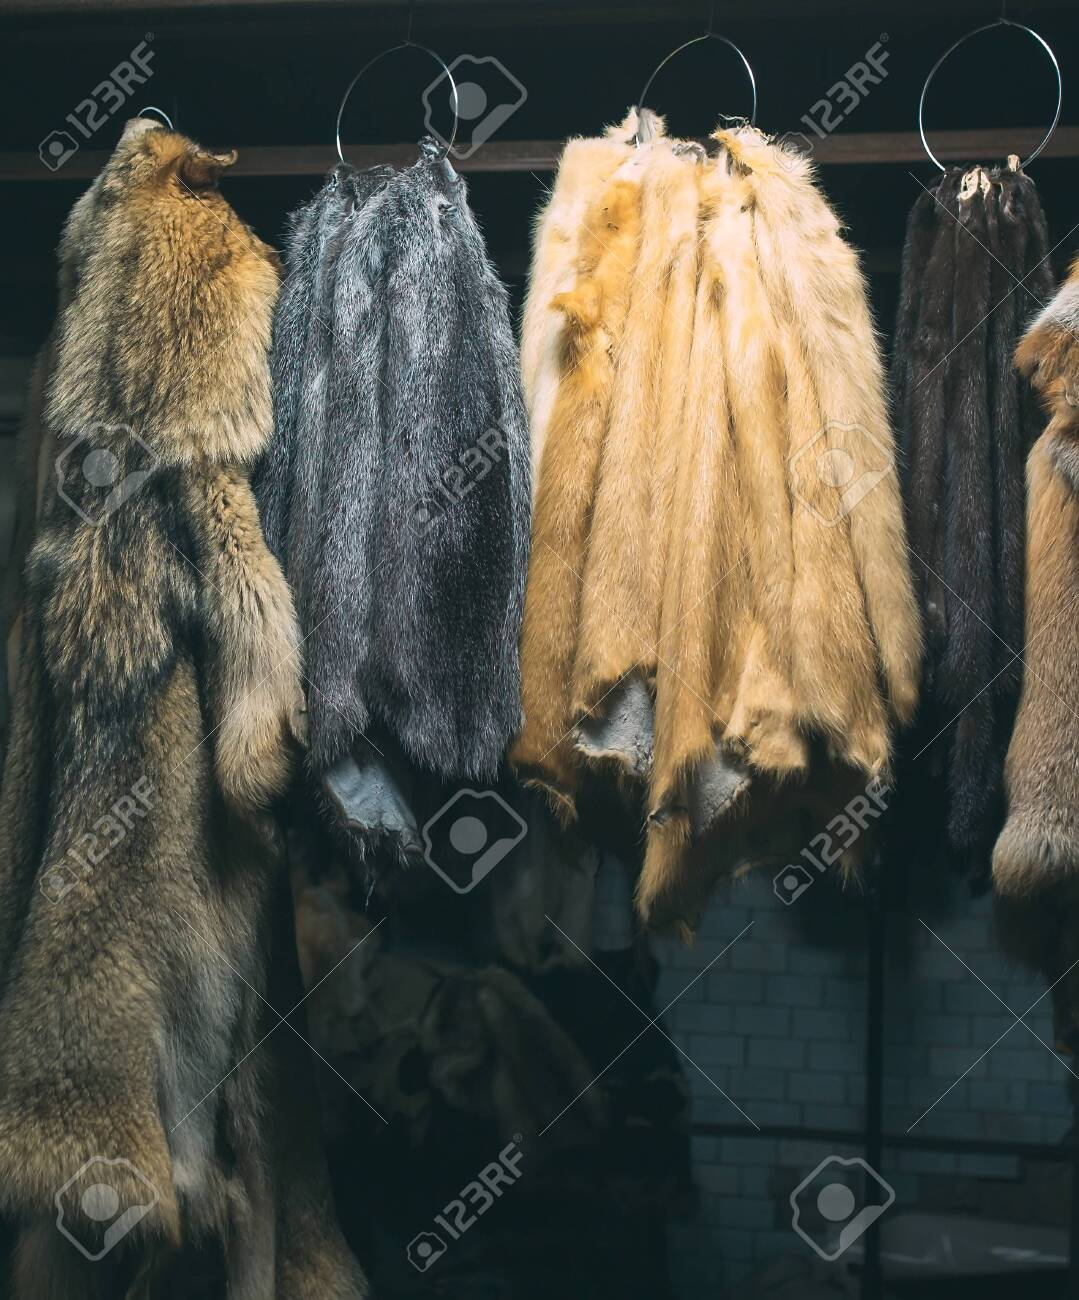 Animal fur. foxes, raccoon, wolf, beaver, mink, nutria hanging after processing. - 128220224